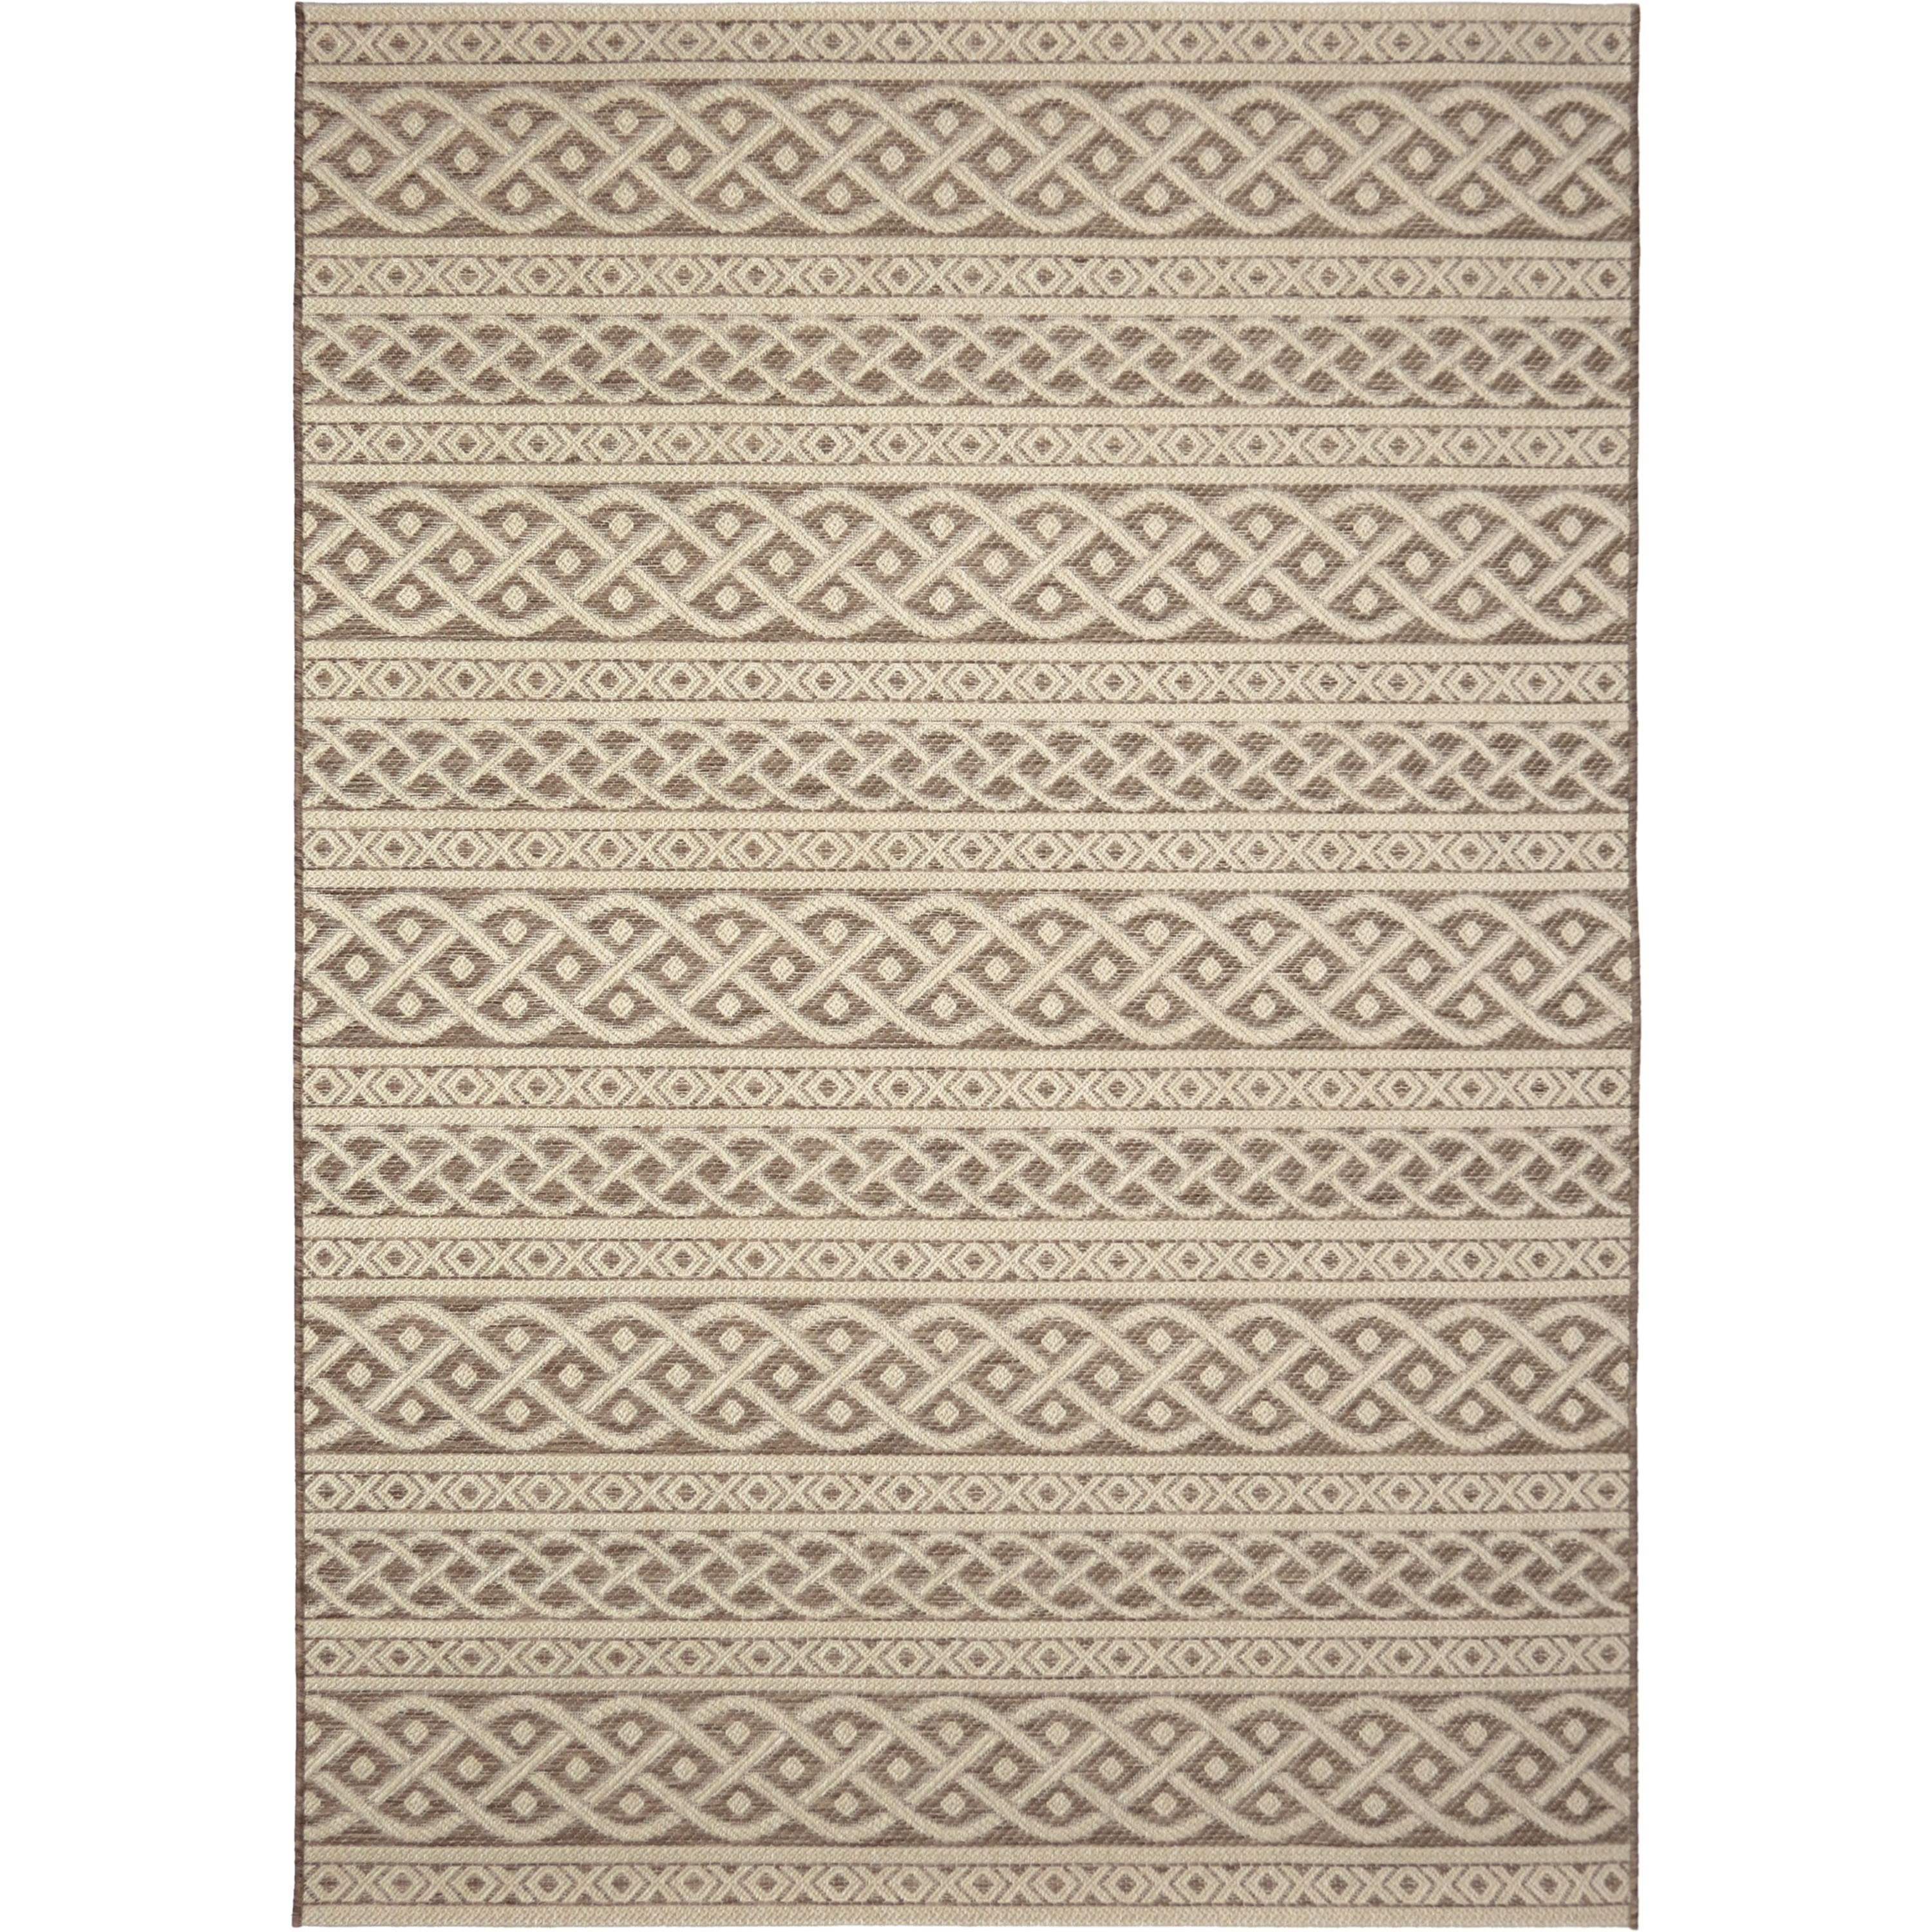 "Jersey Home Organic Cable Tan 5'1"" x 7'6"" Rug by Orian Rugs at Mueller Furniture"